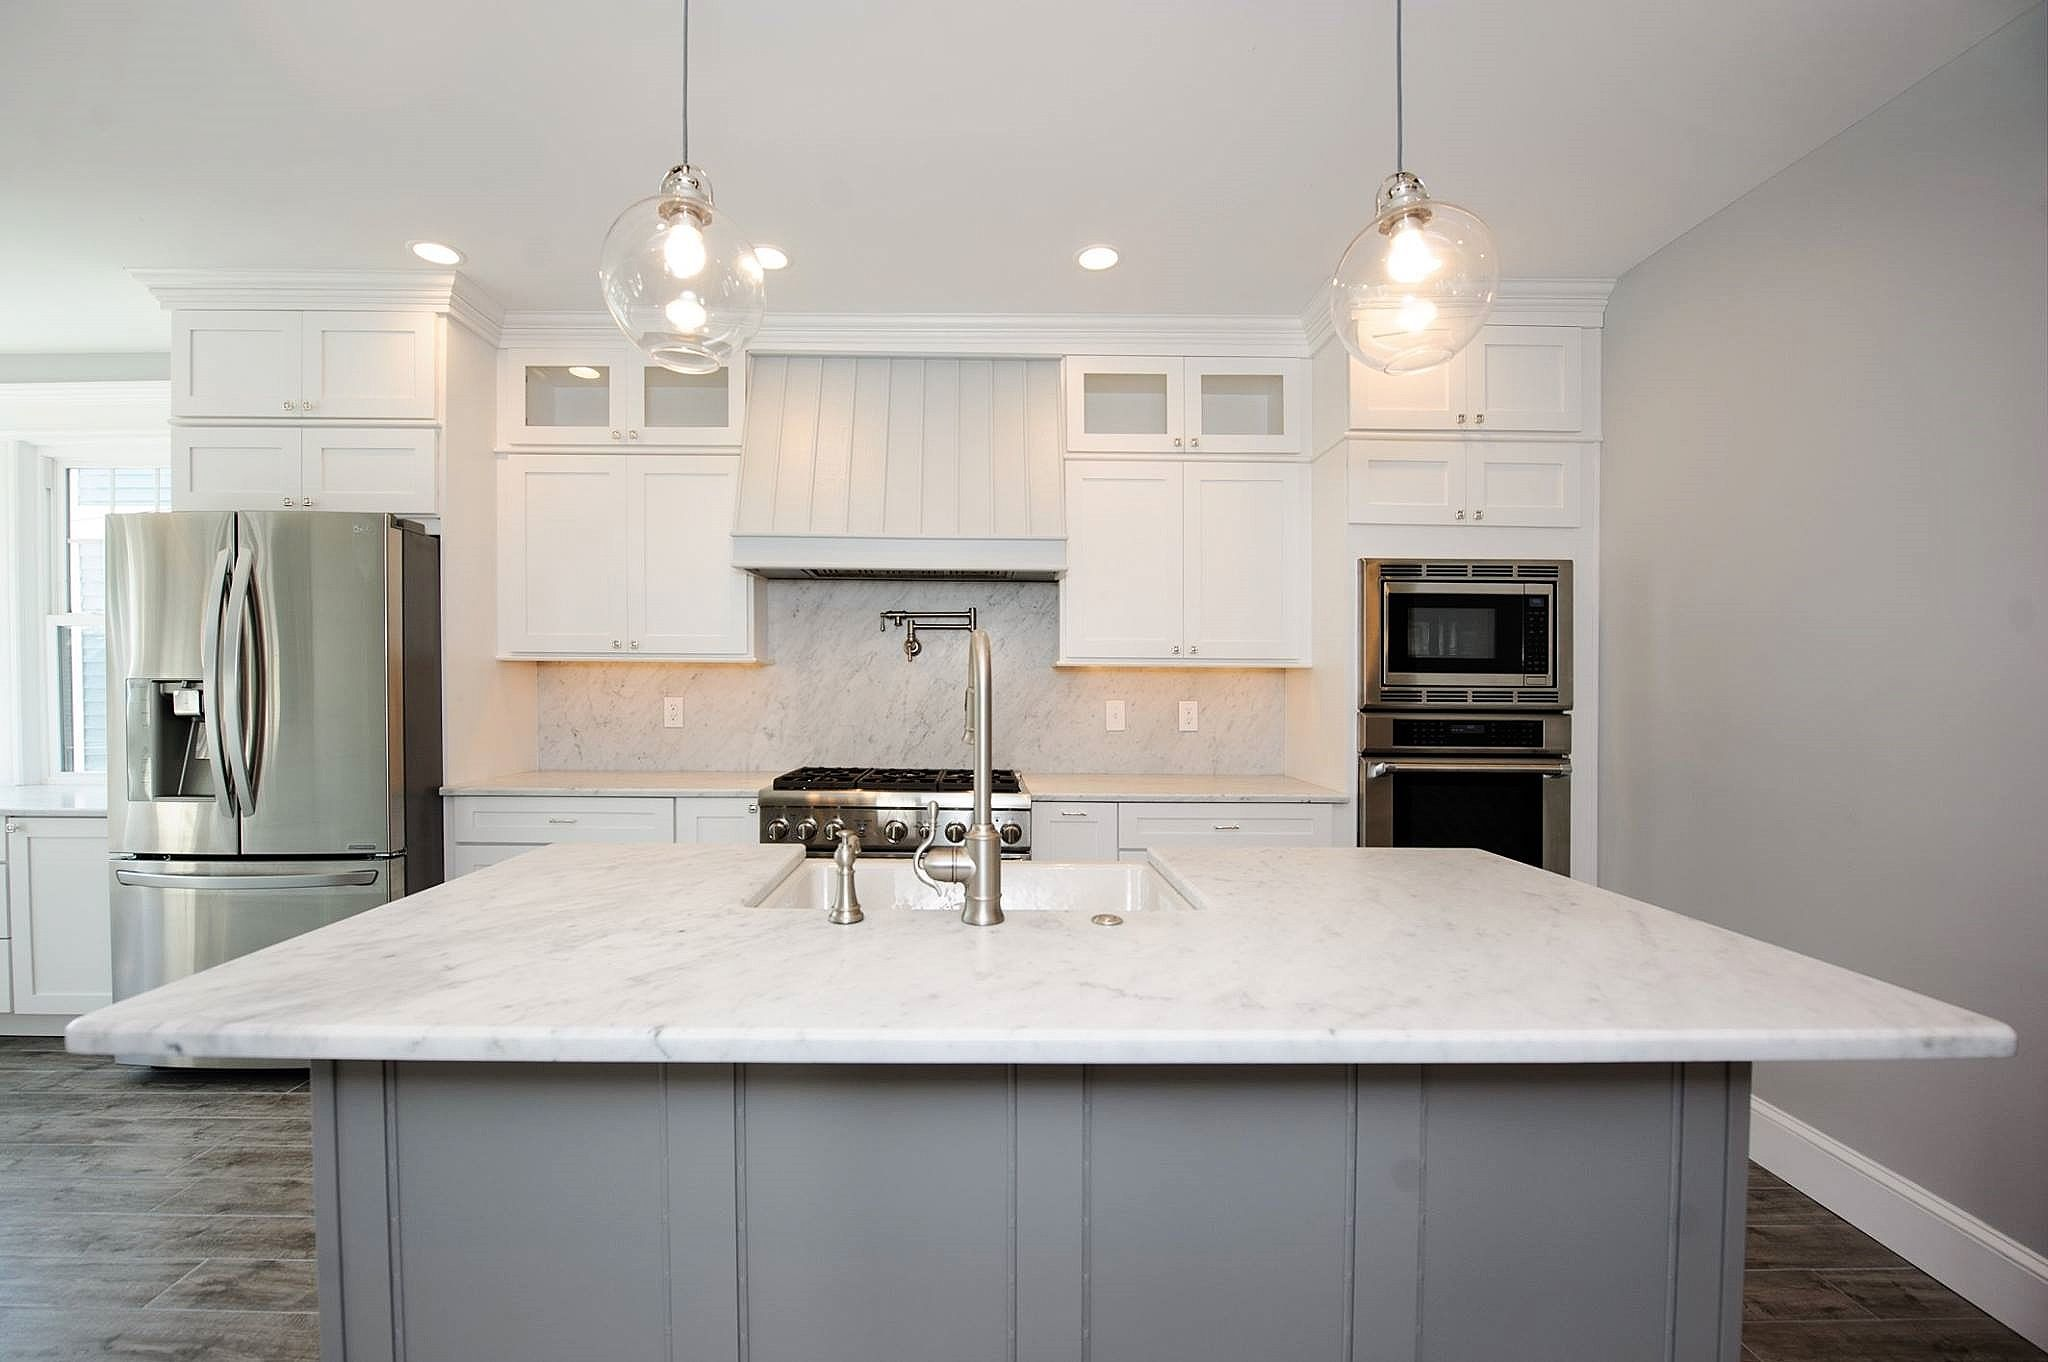 This Bright And Airy Shore Home Features Stunning Honed Carrara Marble Countertops With A Full Height Marble Countertops Countertops Natural Stone Countertops